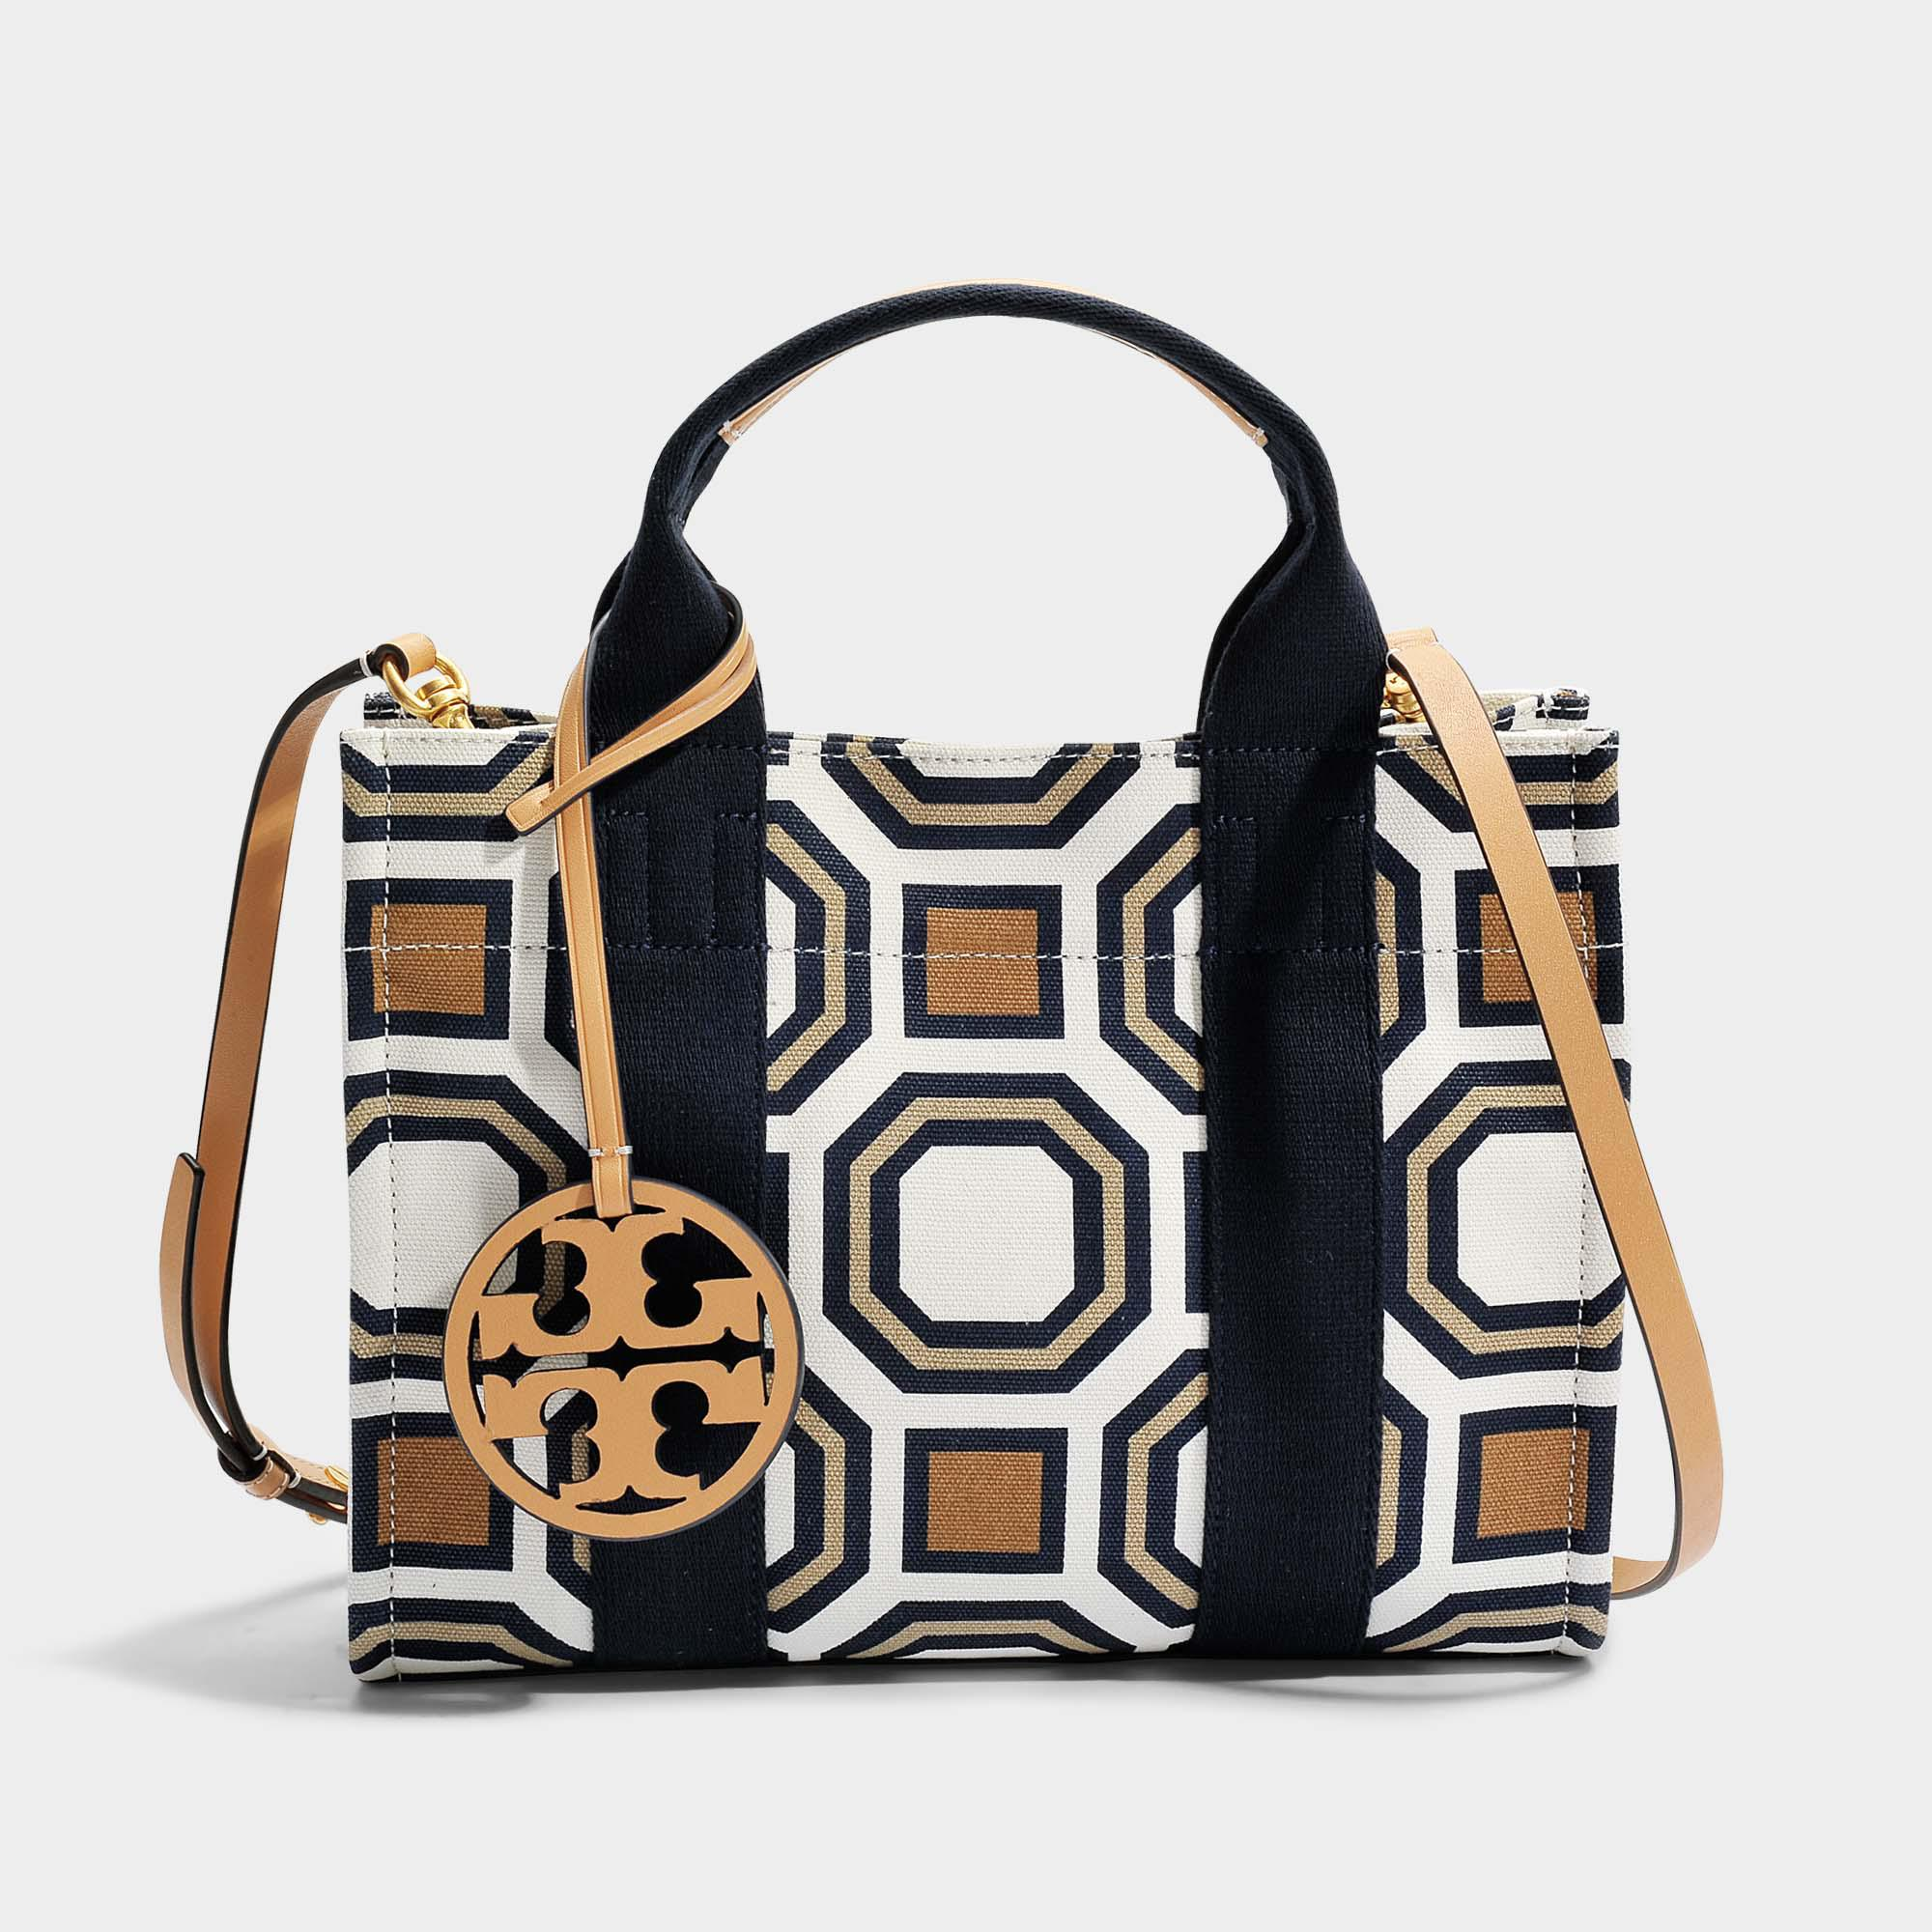 b54fcc7aec Tory Burch Tory Mini Tote Bag In Ivory Octagon Square Canvas in ...